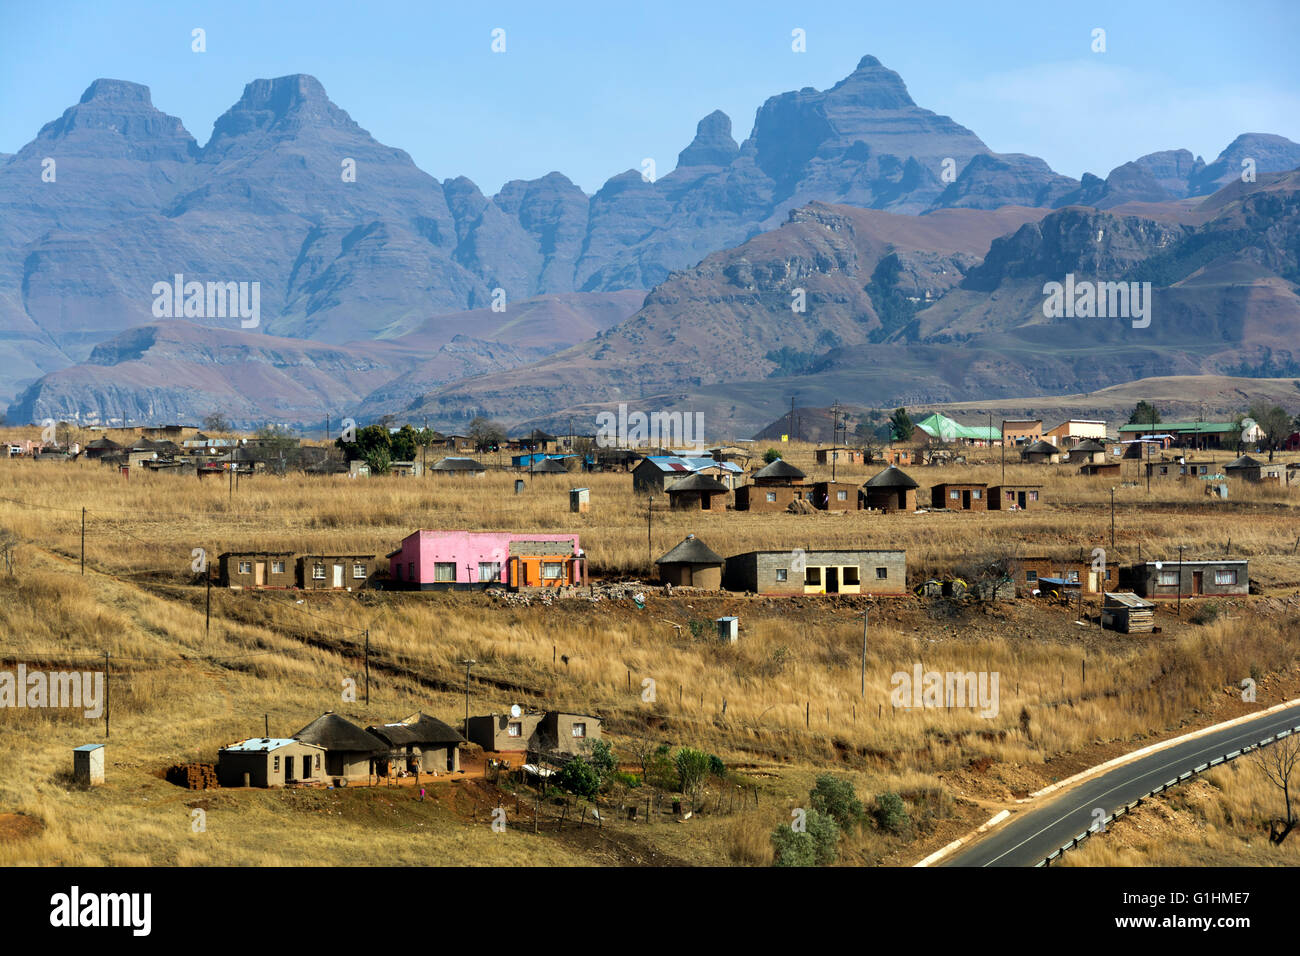 Village in the foothills of the Drakensbergs, KwaZulu Natal, South Africa Stock Photo